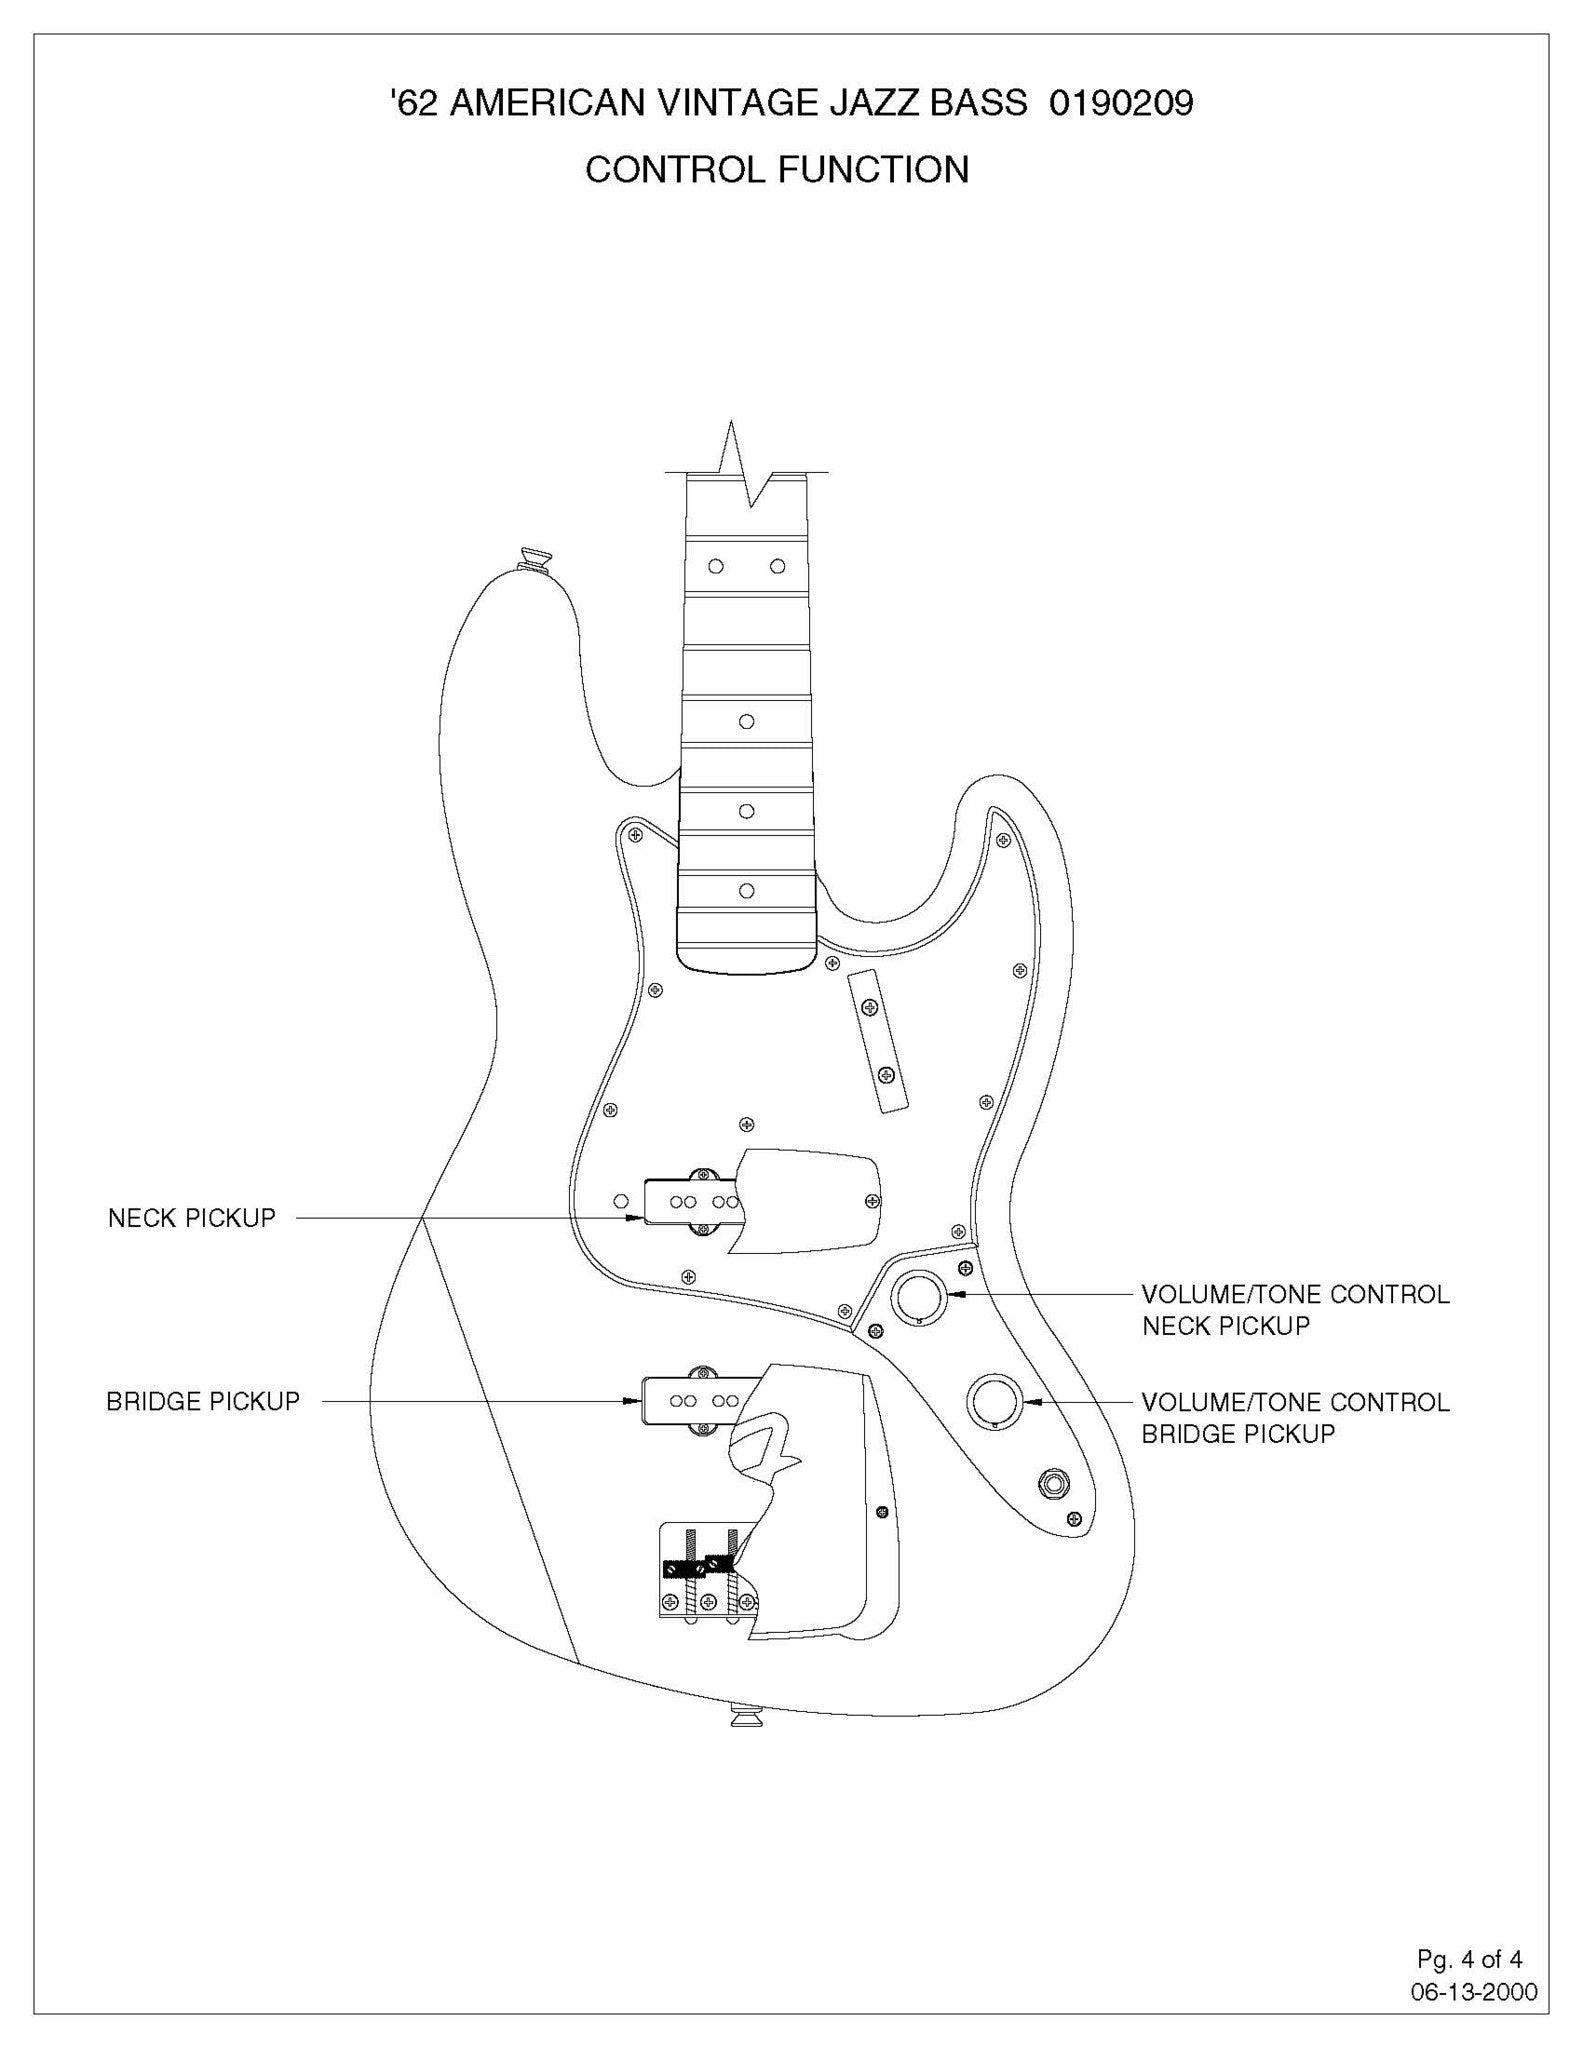 Fender Nashville Telecaster Wiring Diagram Data Wire Electric Guitar 62 Schematics U2022 Diagrams